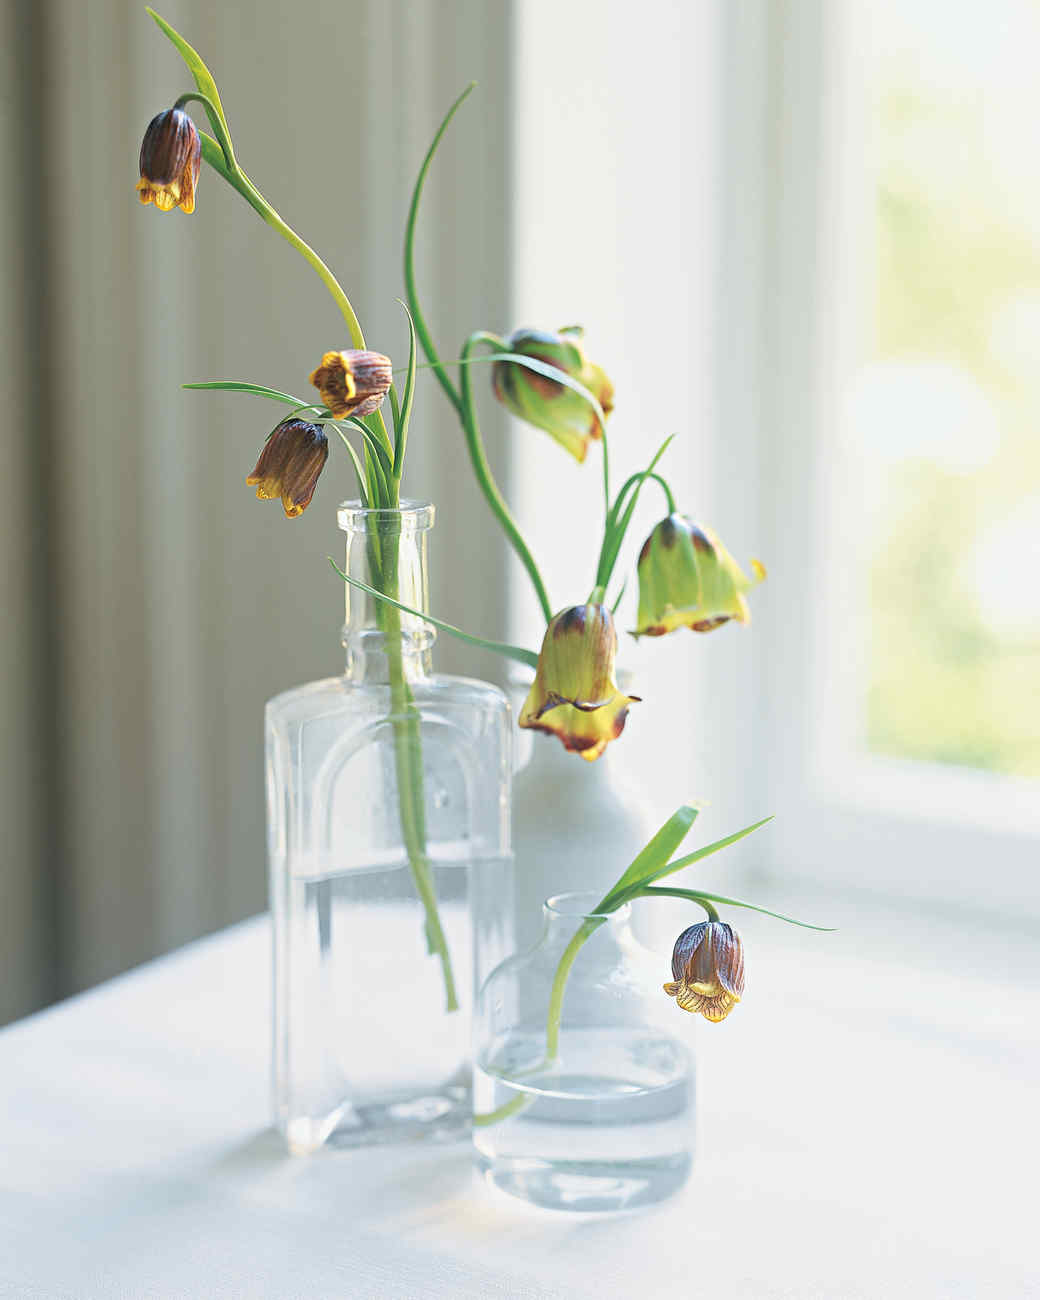 flowers-in-vases-goodthings-ml205f1-0115.jpg